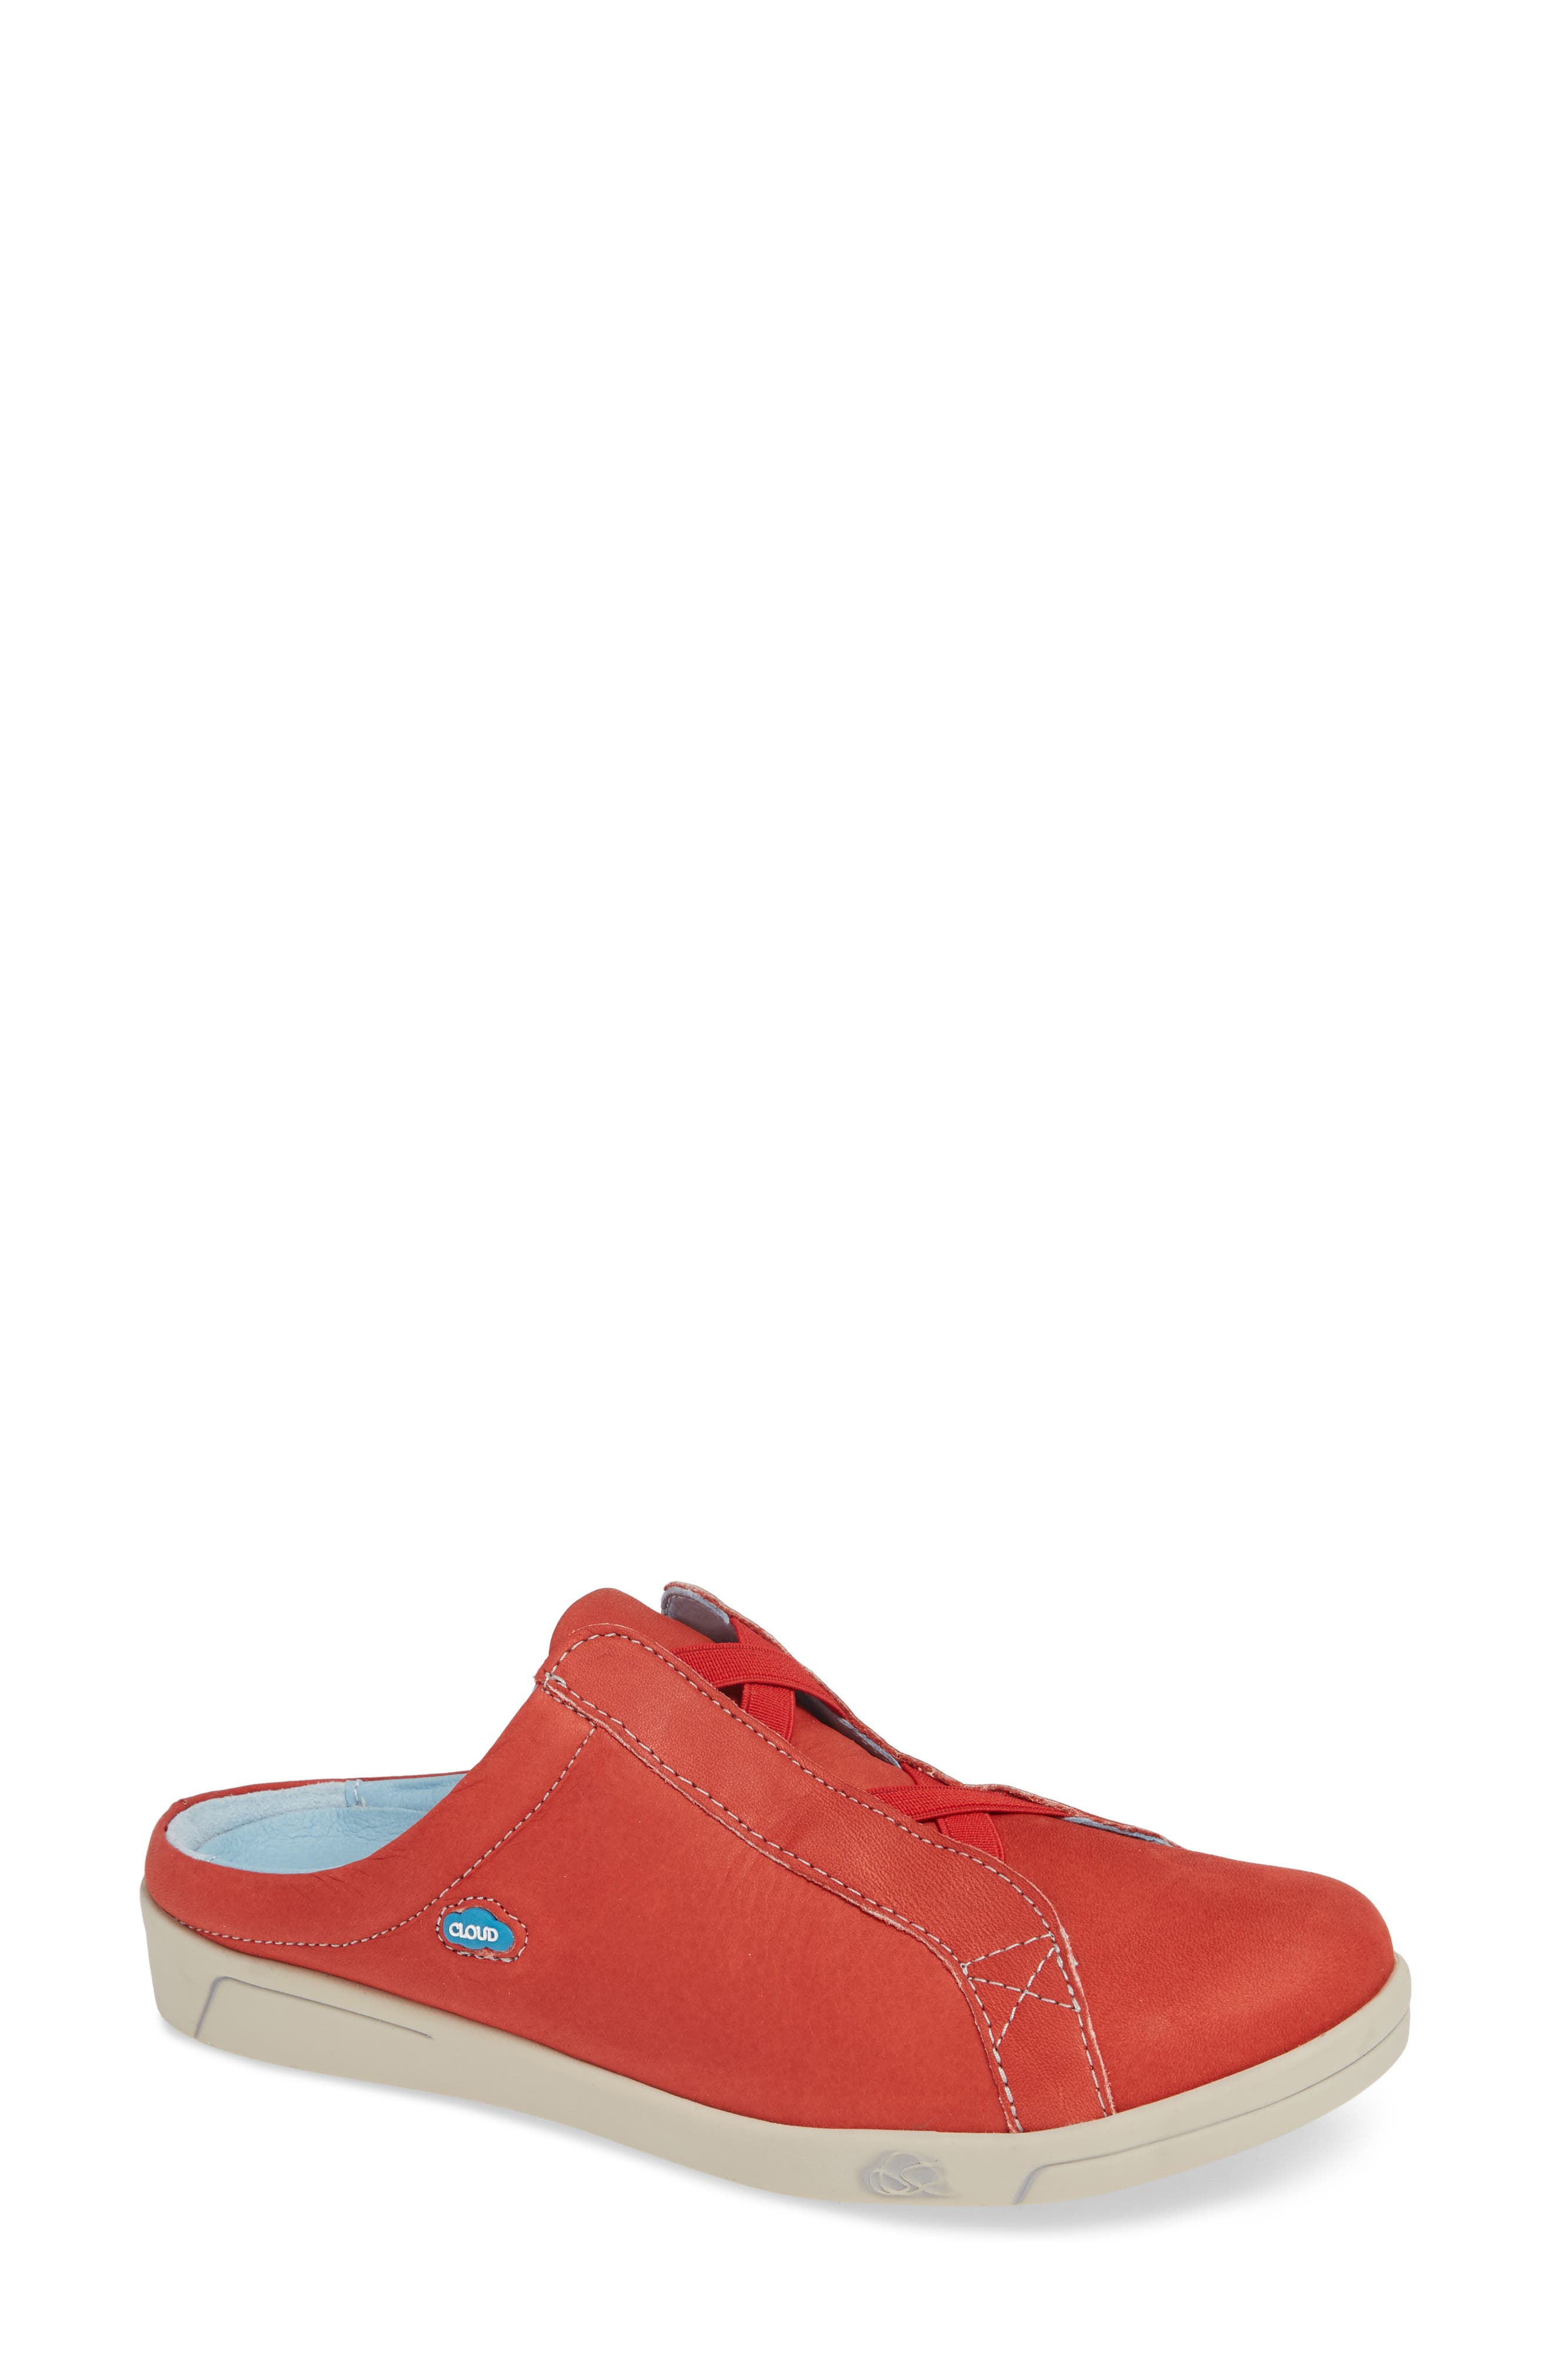 Arizona Sneaker,                         Main,                         color, RED LEATHER